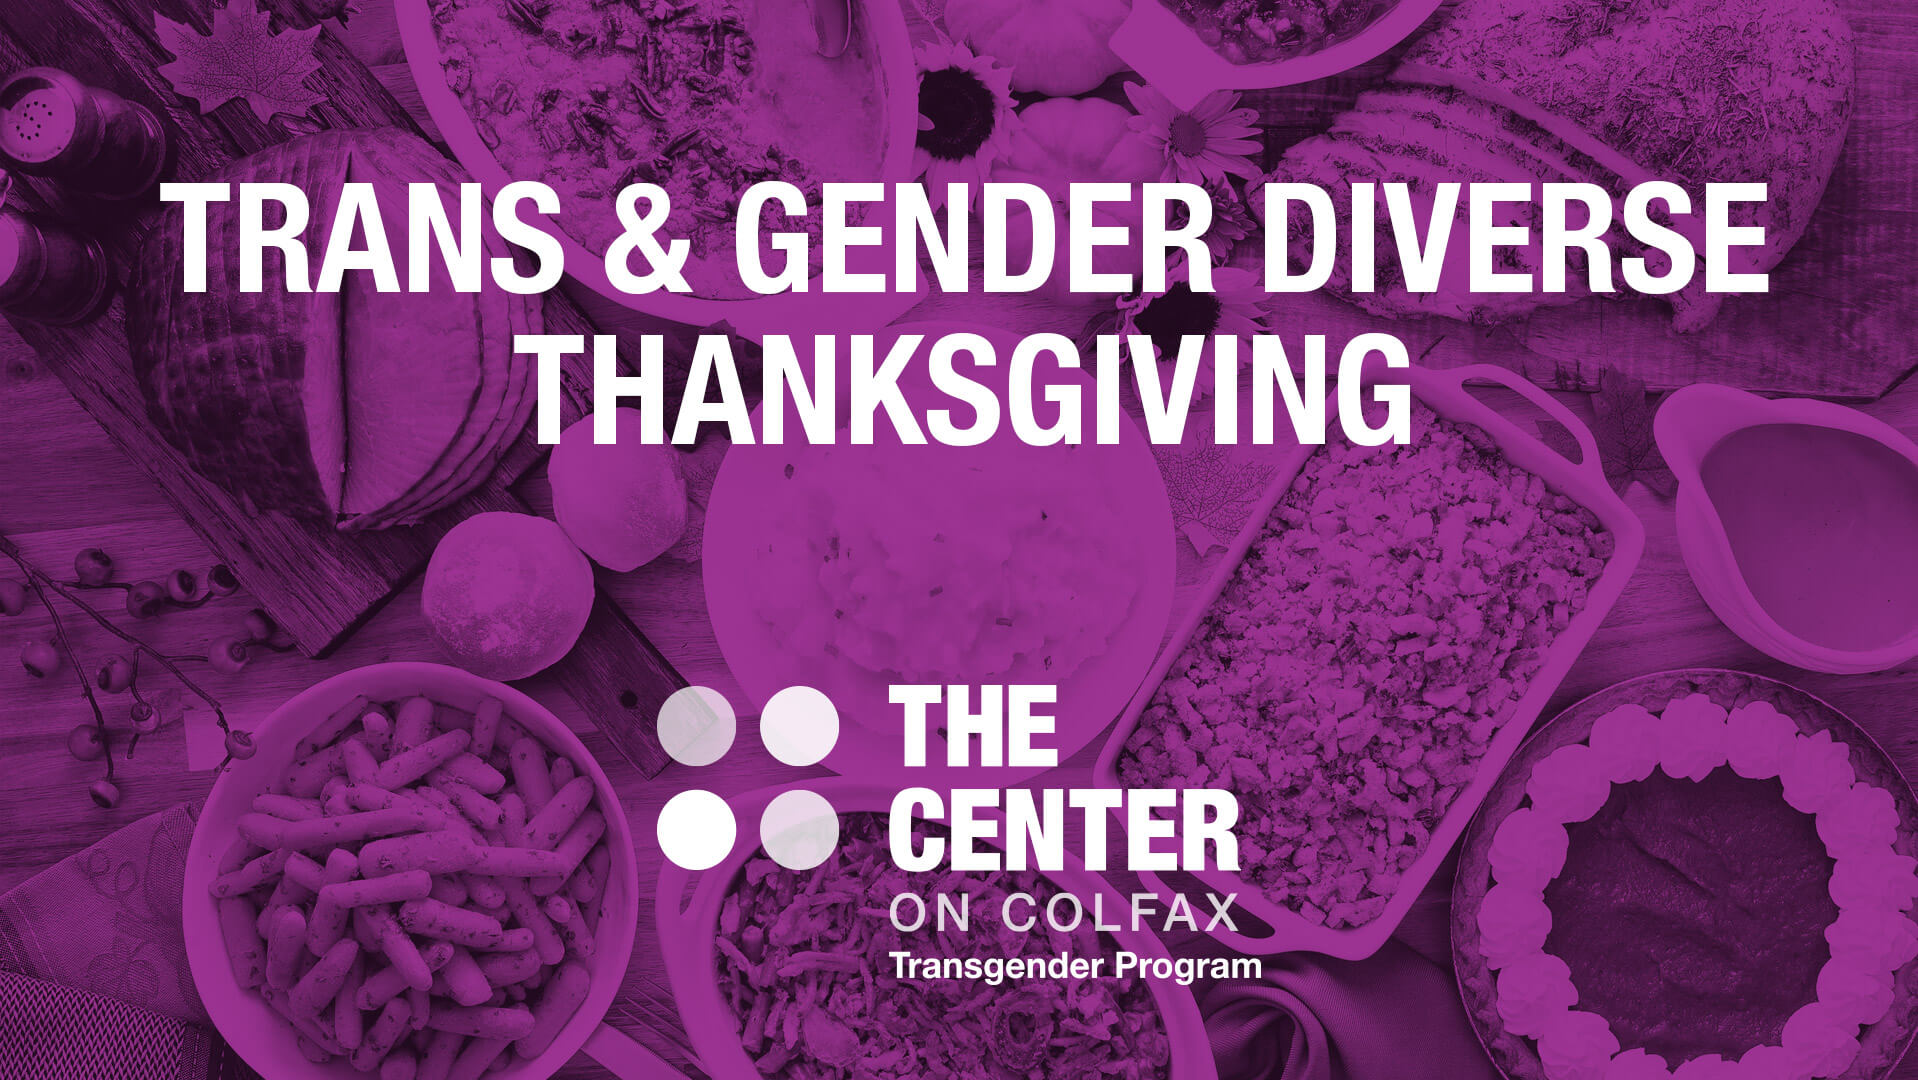 Trans & Gender Diverse Thanksgiving